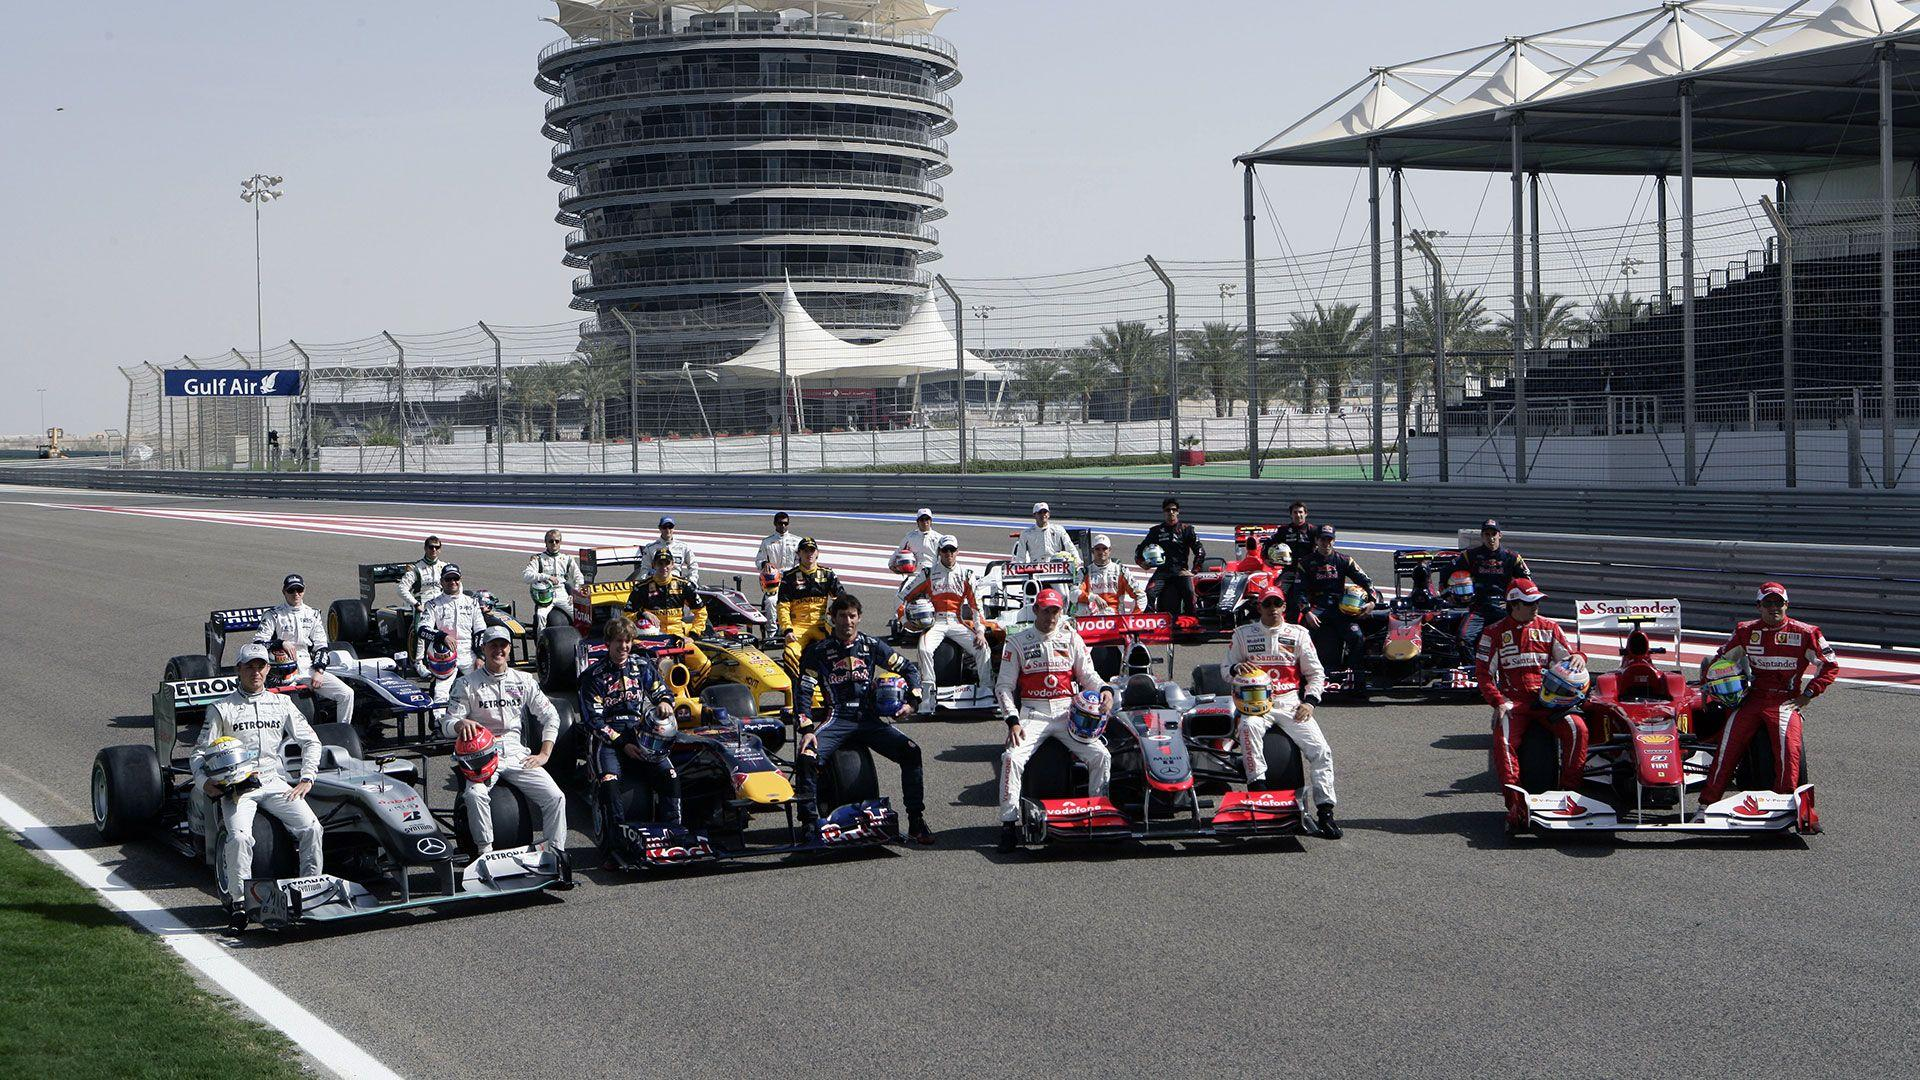 HD Wallpapers 2010 Formula 1 Grand Prix of Bahrain | F1-Fansite.com